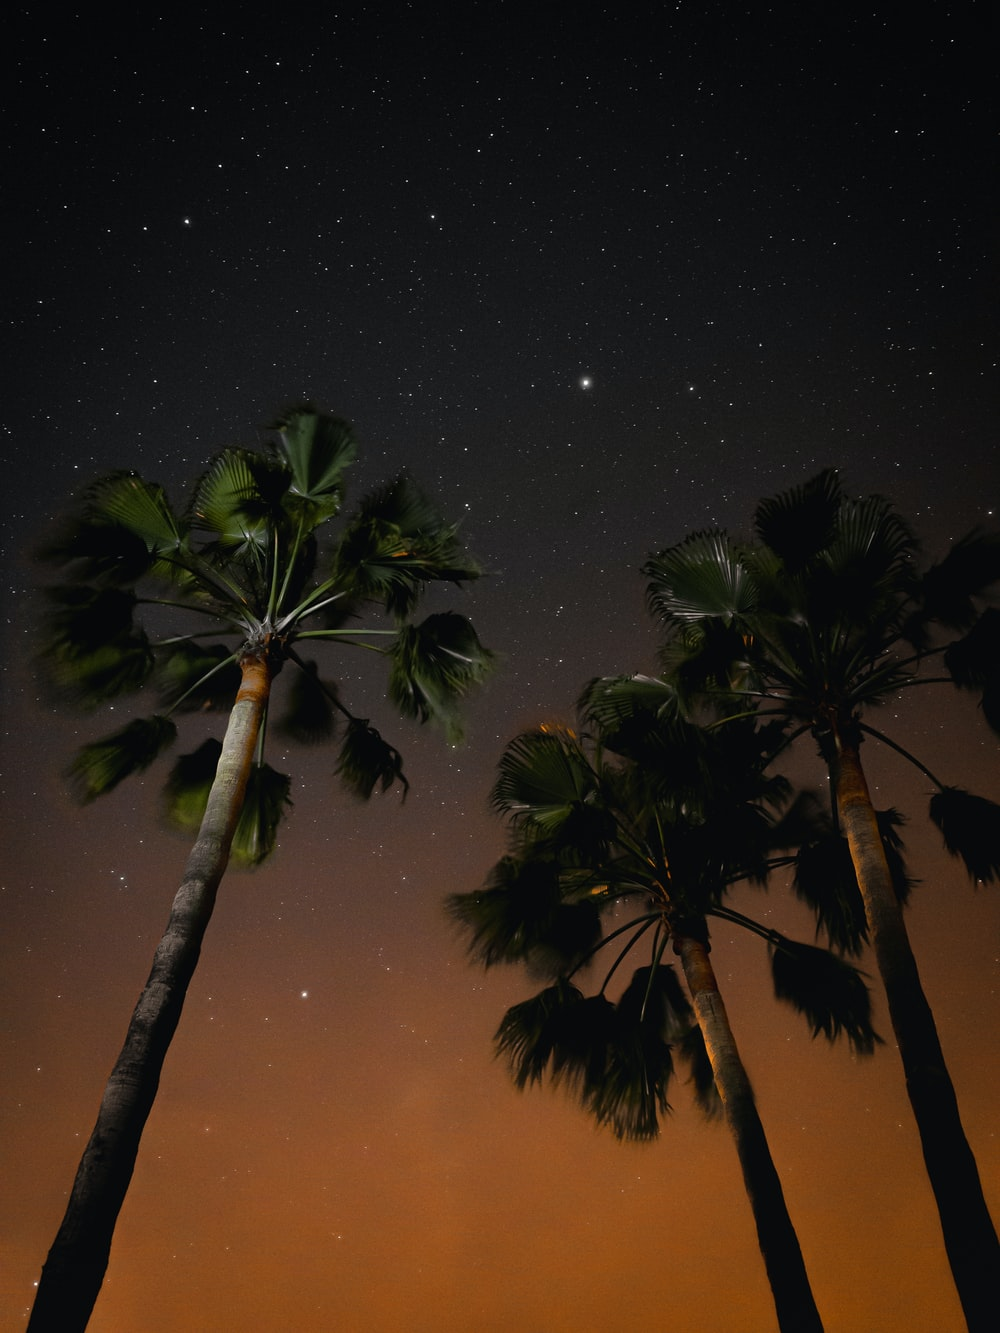 three coconut trees during nighttime